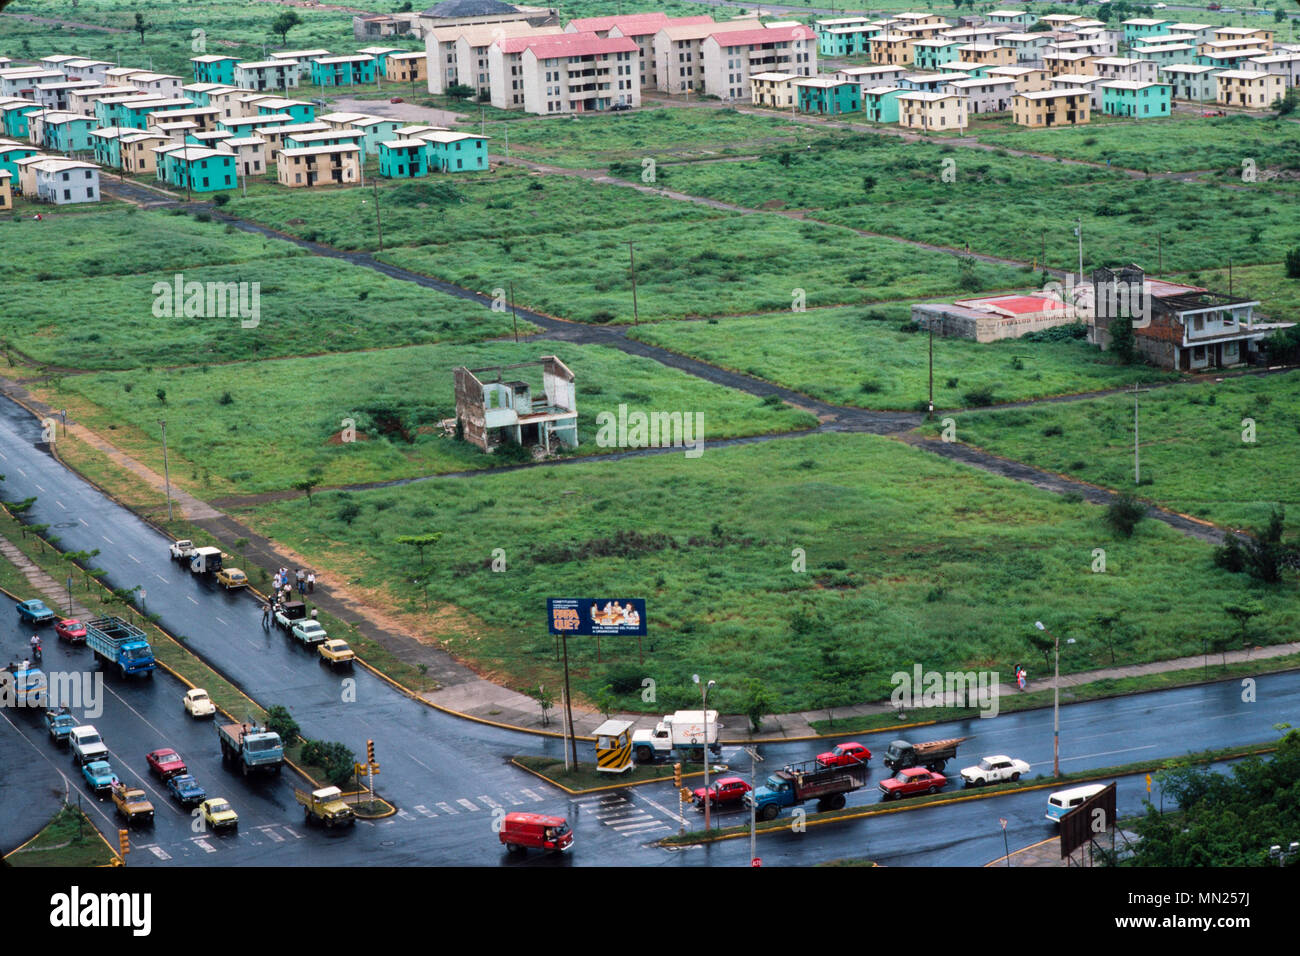 Managua, Nicaragua, June 1986;The city centre was destroyed in an earthquake in 1972. Some new housing has been built. Stock Photo